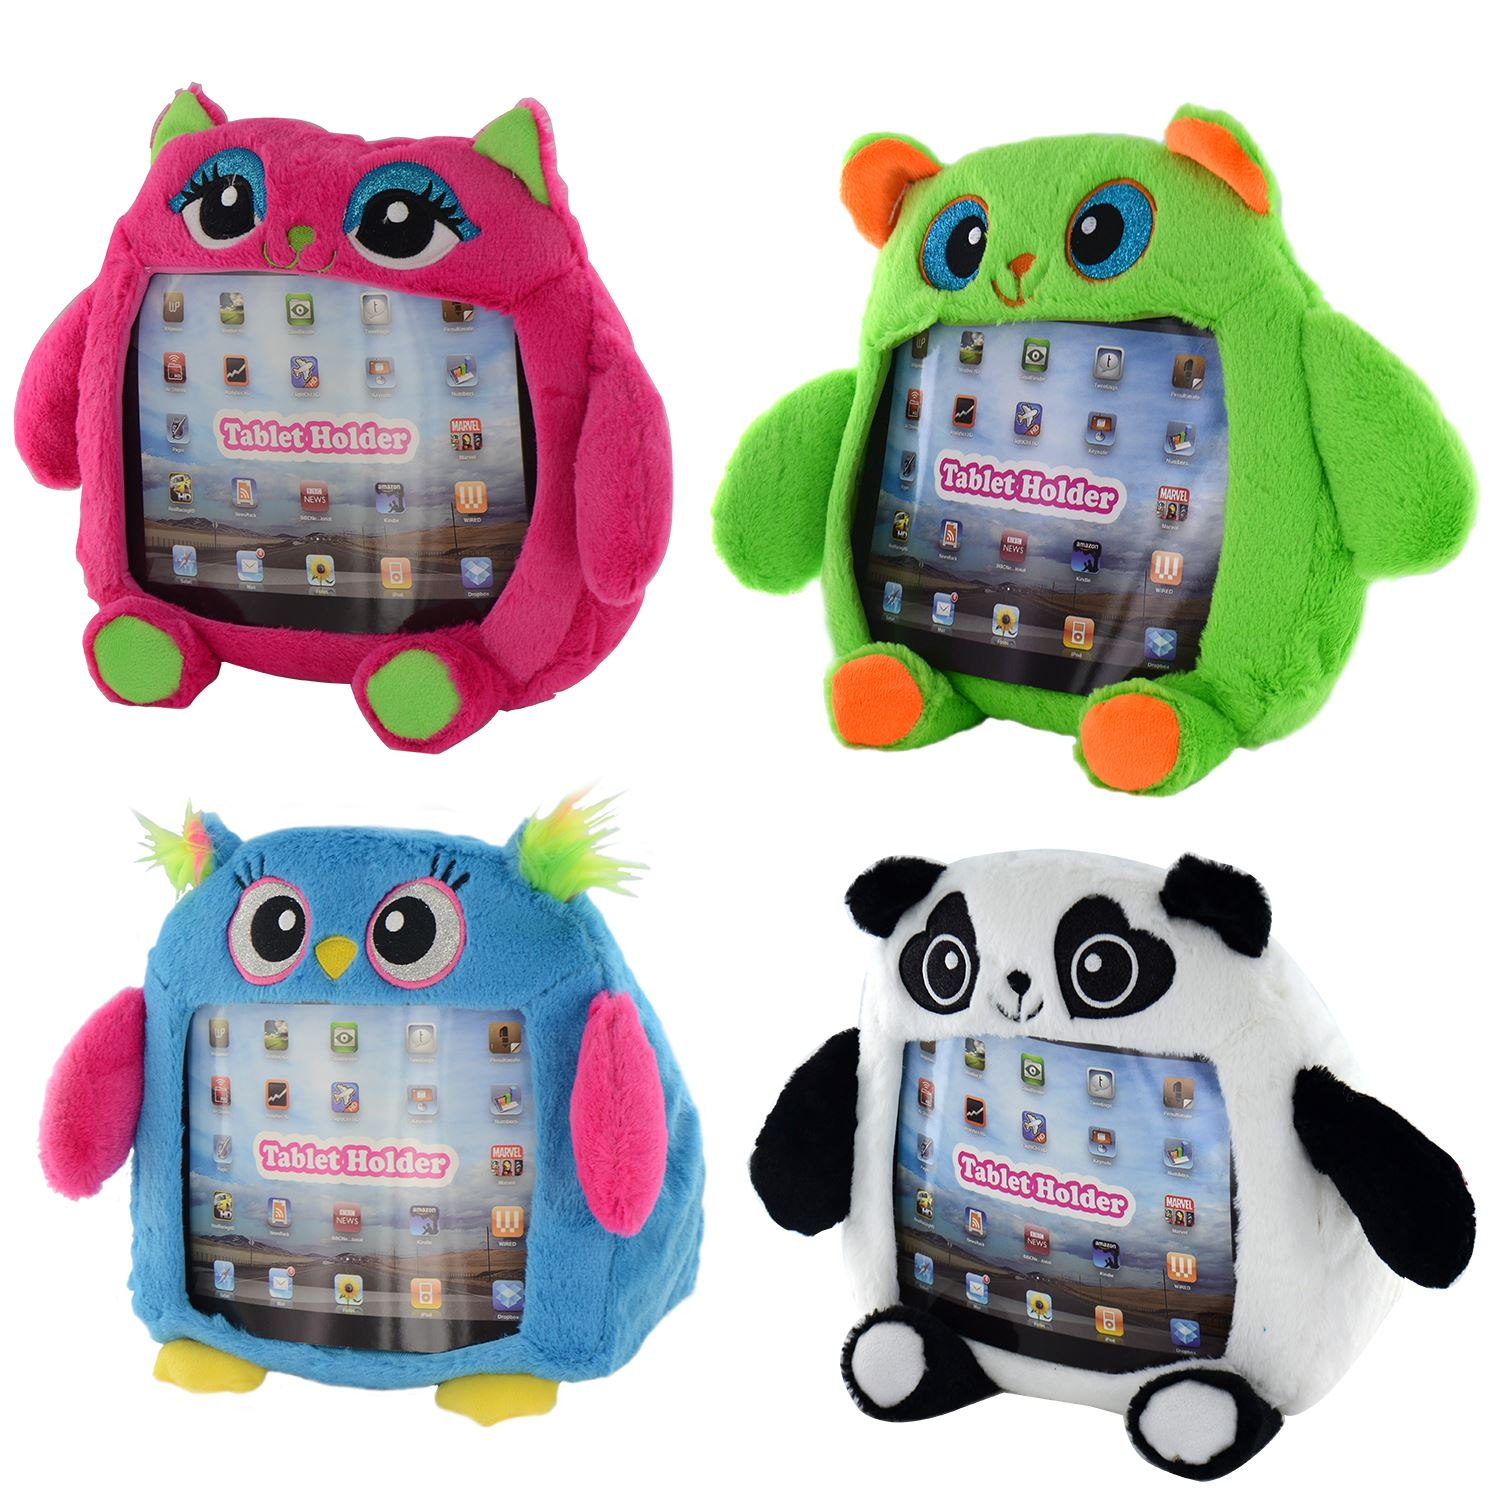 Pictures Of Ipad Mini Animal Cases For Kids Www Kidskunst Info